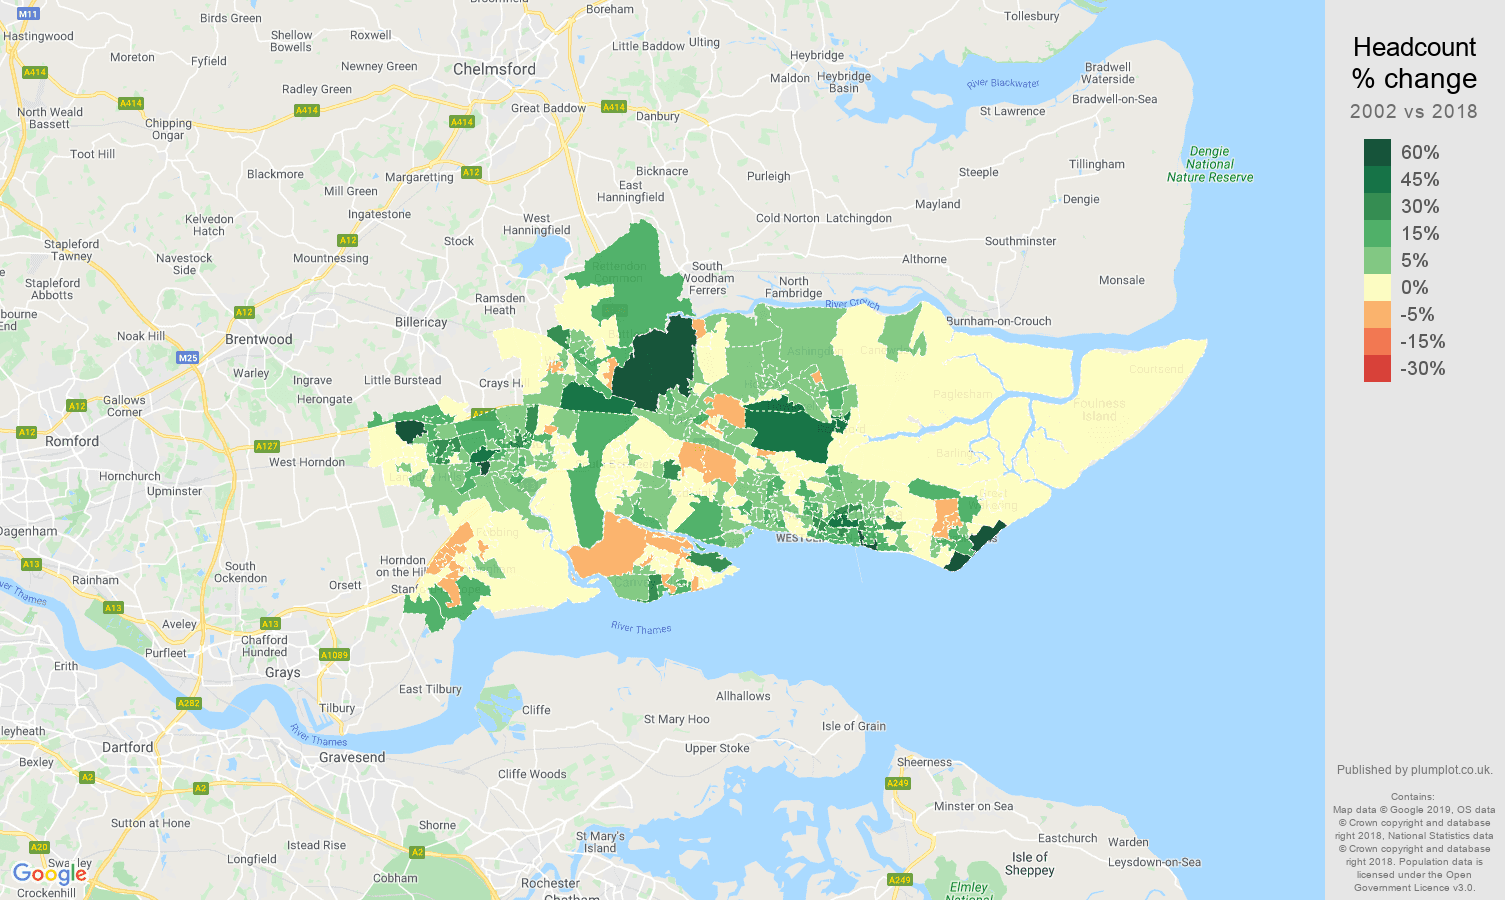 Southend on Sea headcount change map